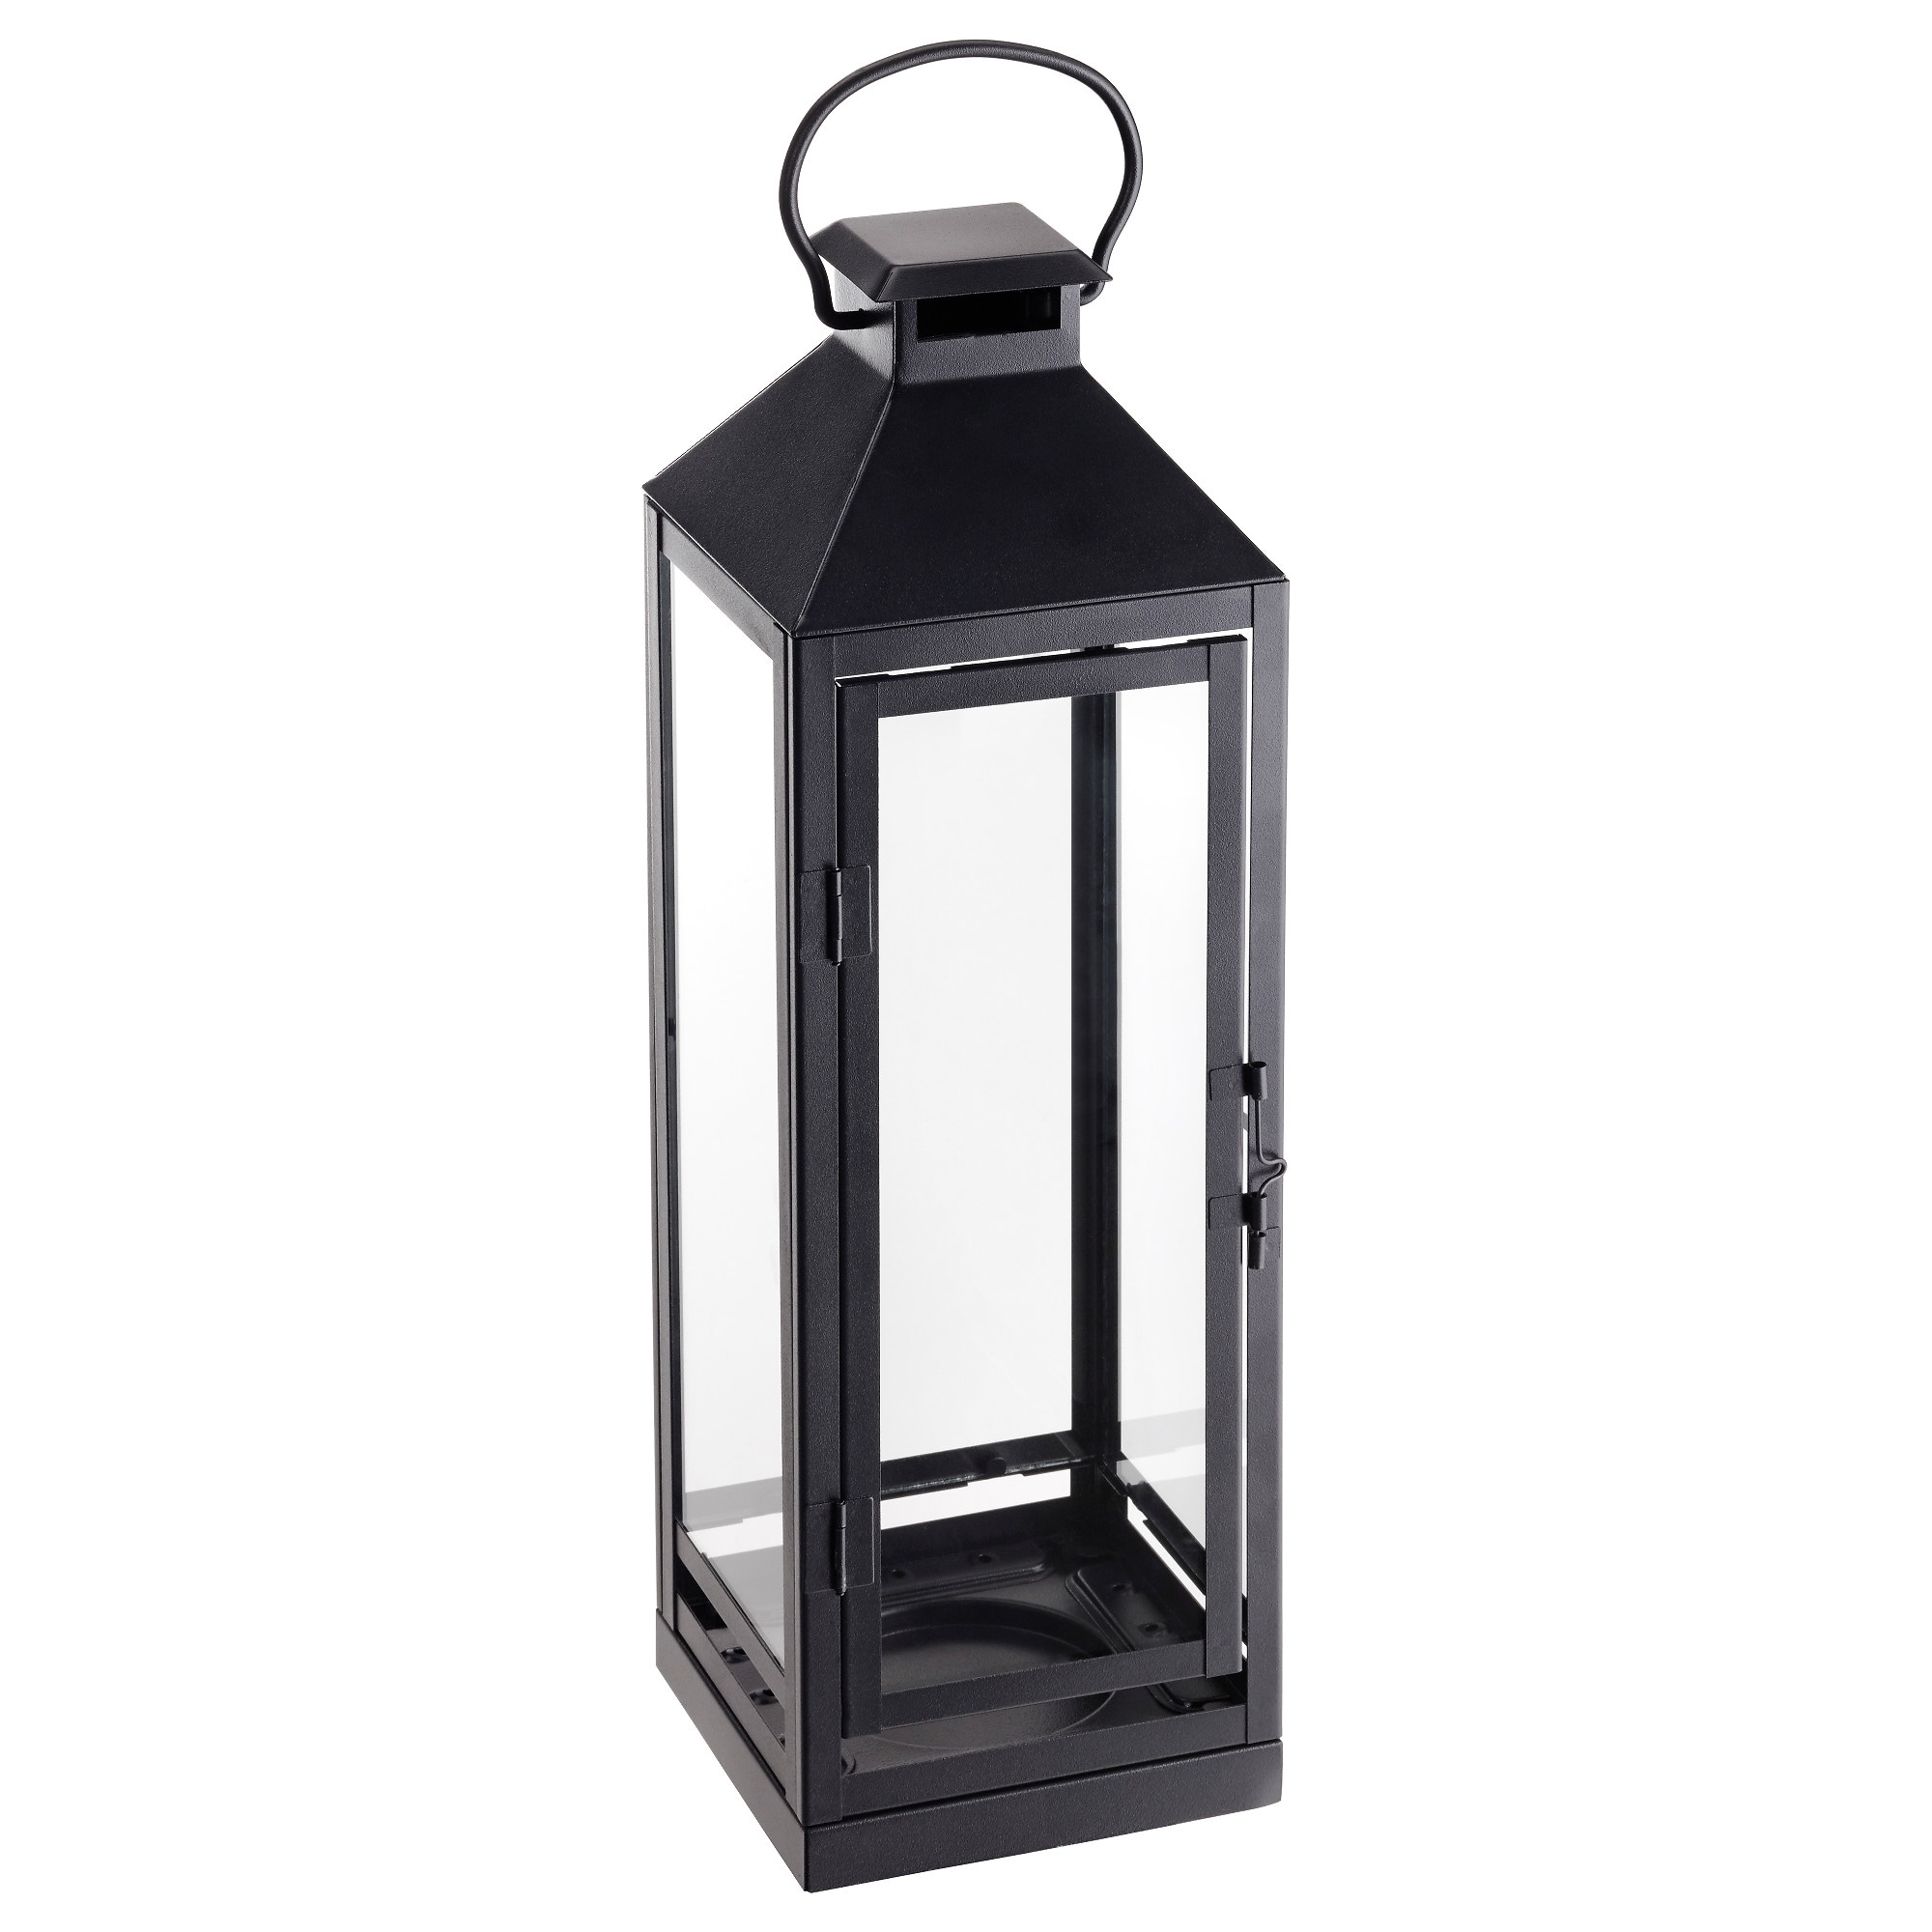 Lanterns & Candle Lanterns – Ikea In Well Known Tall Outdoor Lanterns (View 16 of 20)